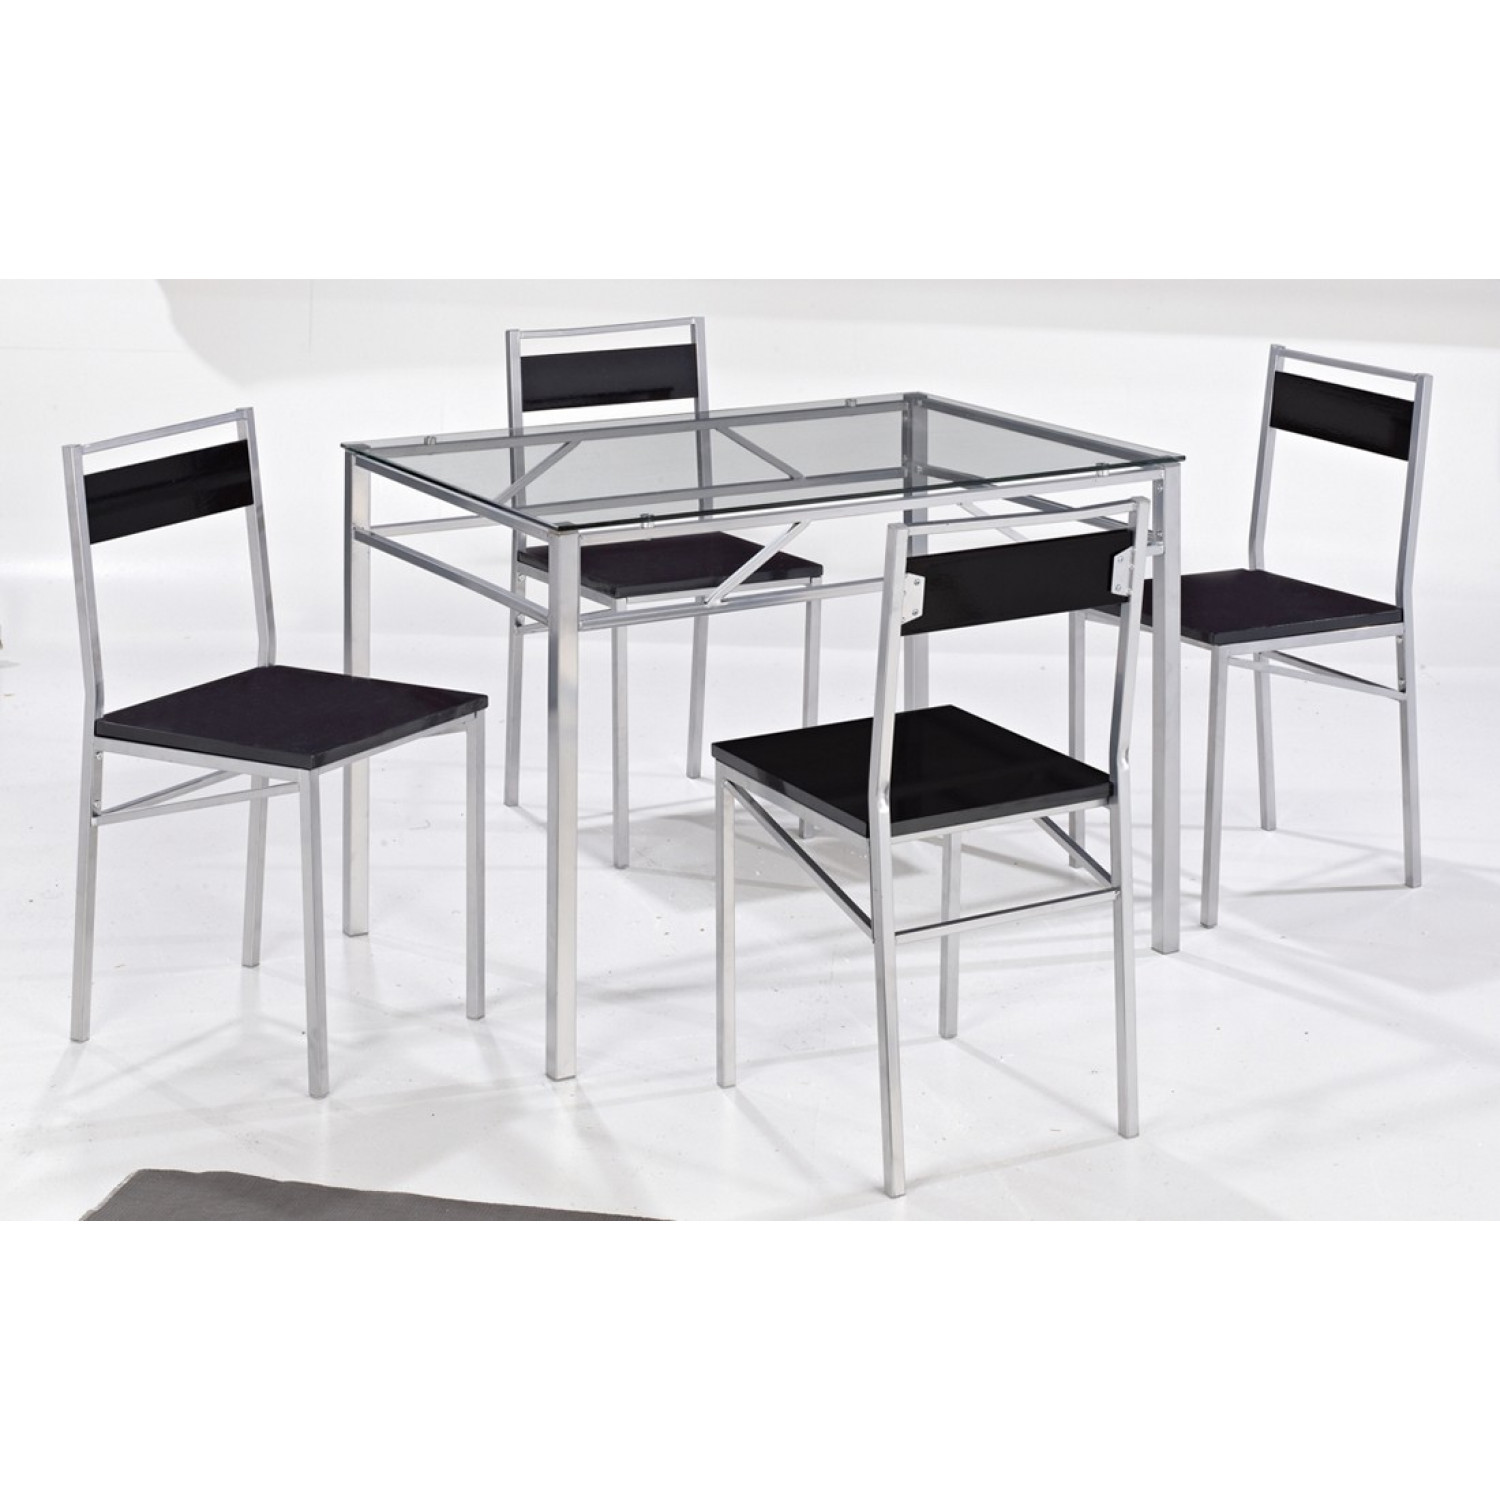 4 Seater Dining Set Gl Table Chairs Black Silver